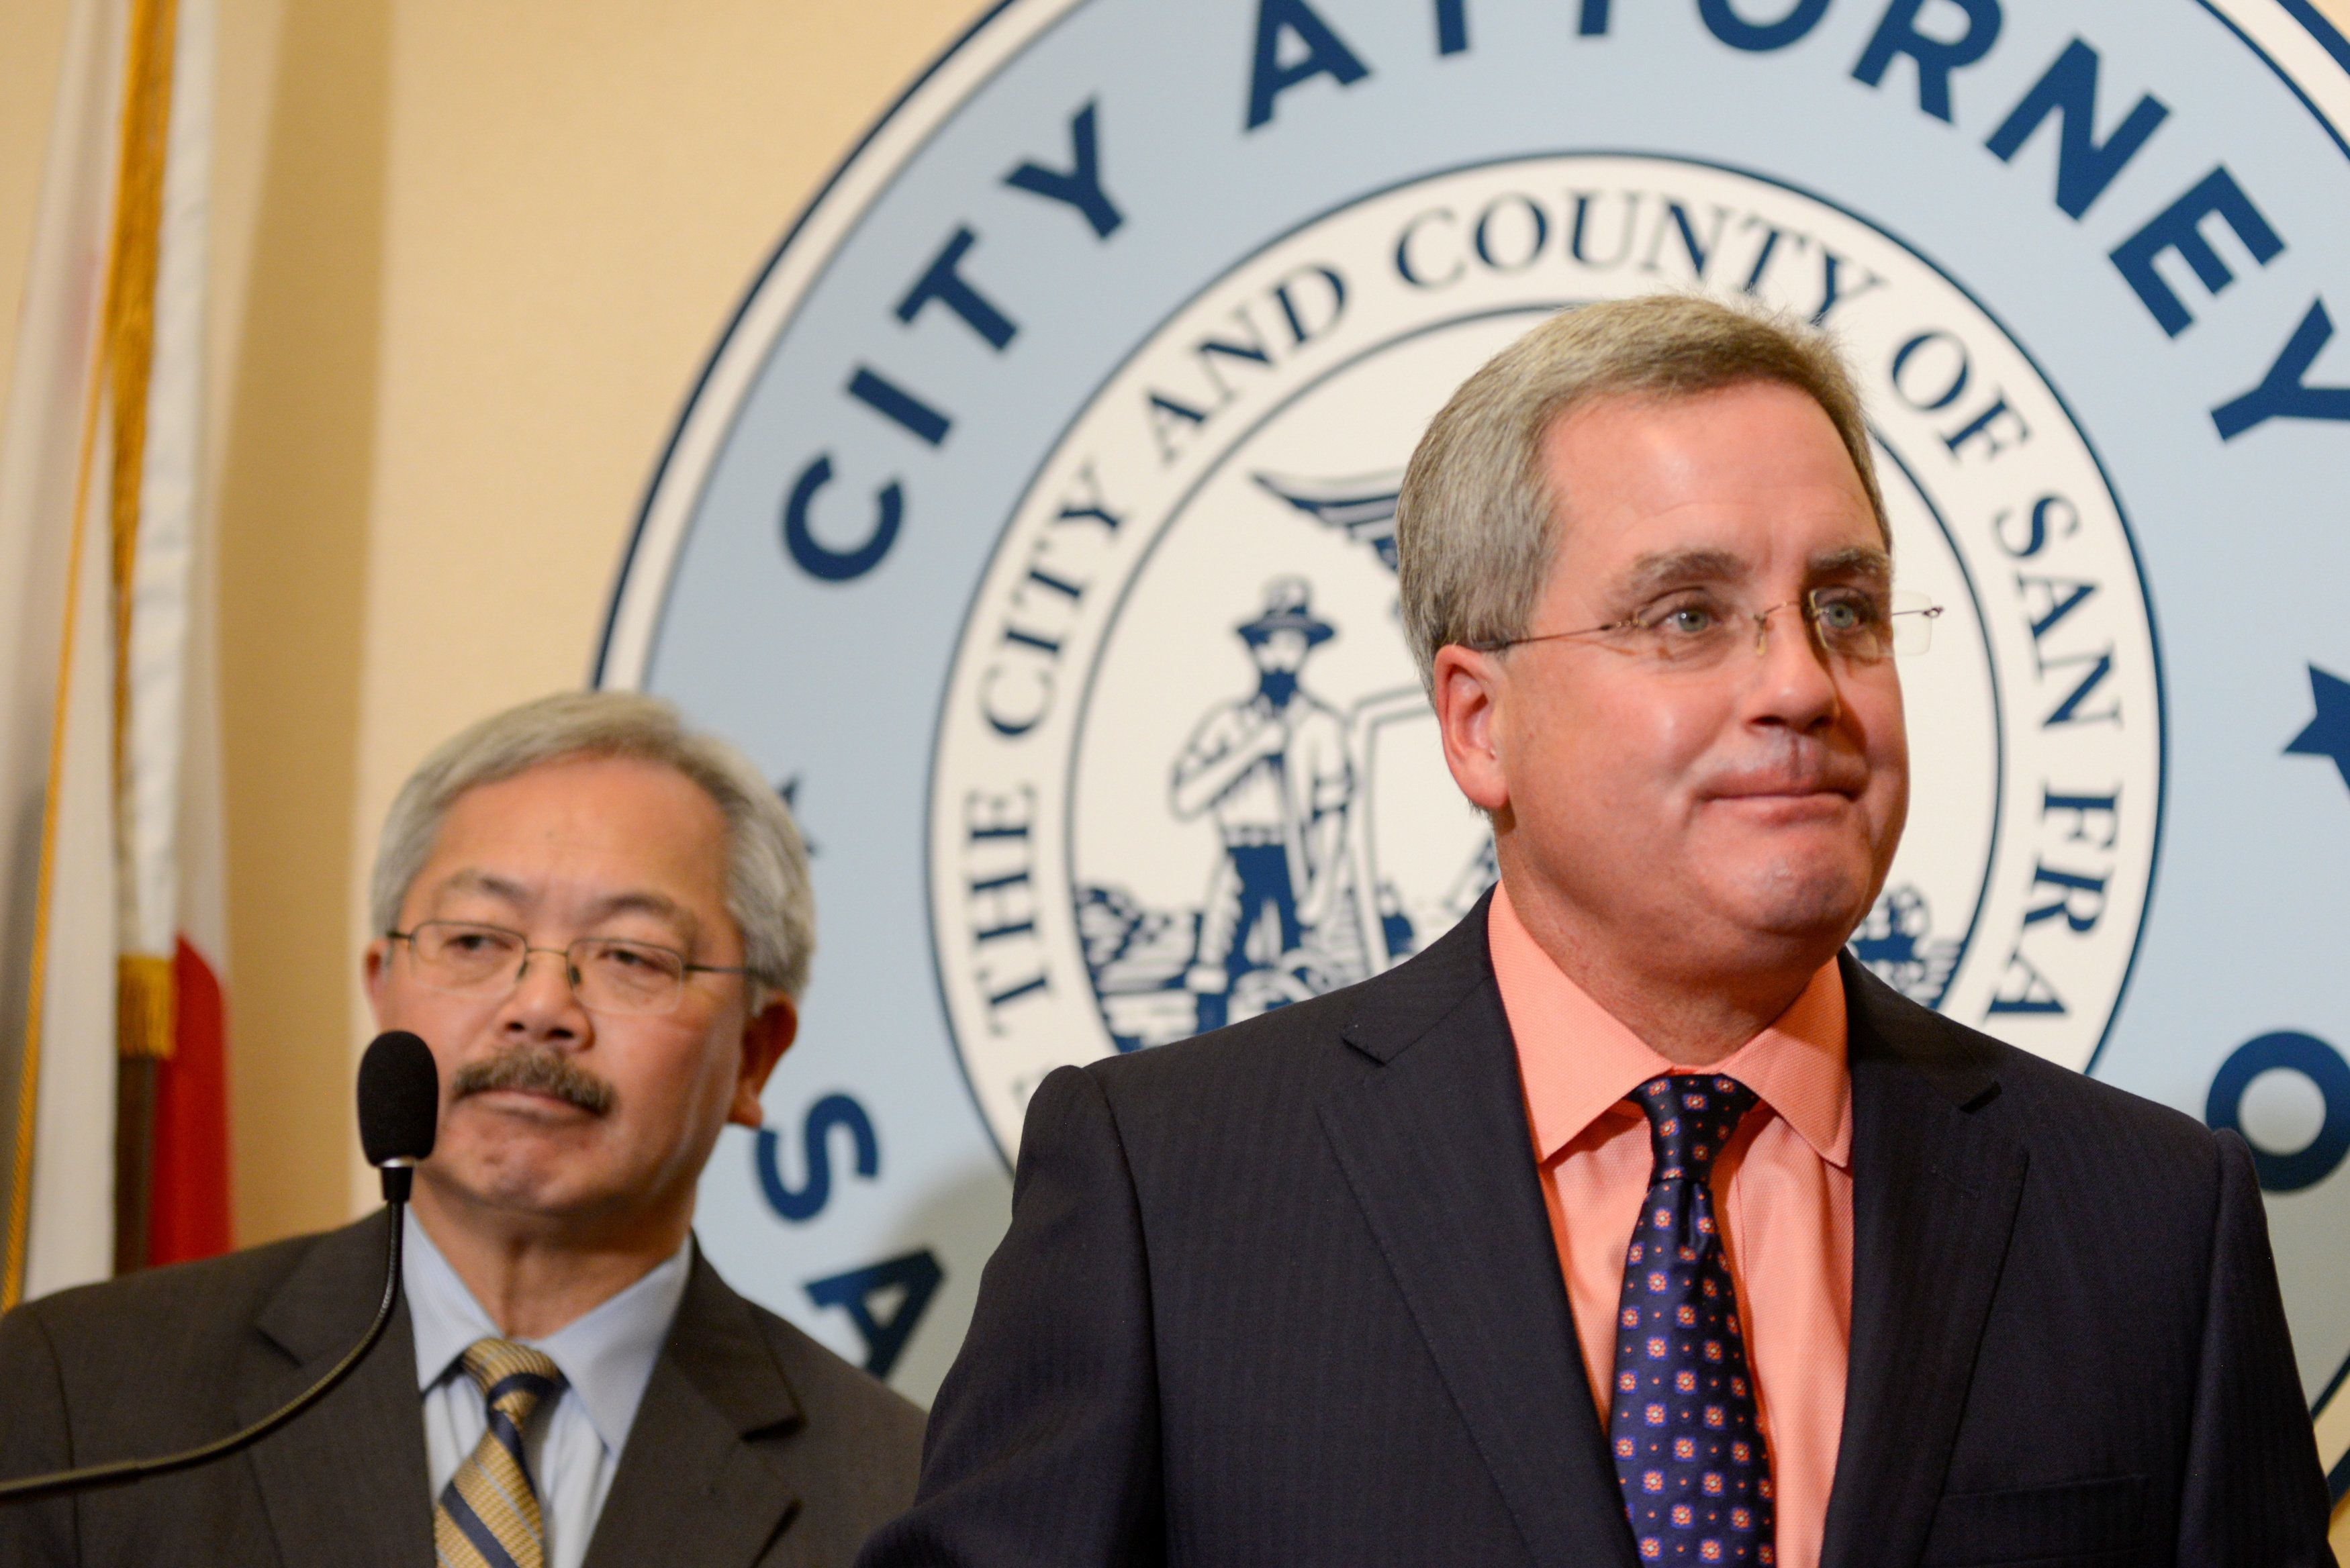 San Francisco Mayor Ed Lee and City Attorney Dennis Herrera announce the filing of a lawsuit against President Donald Trump's